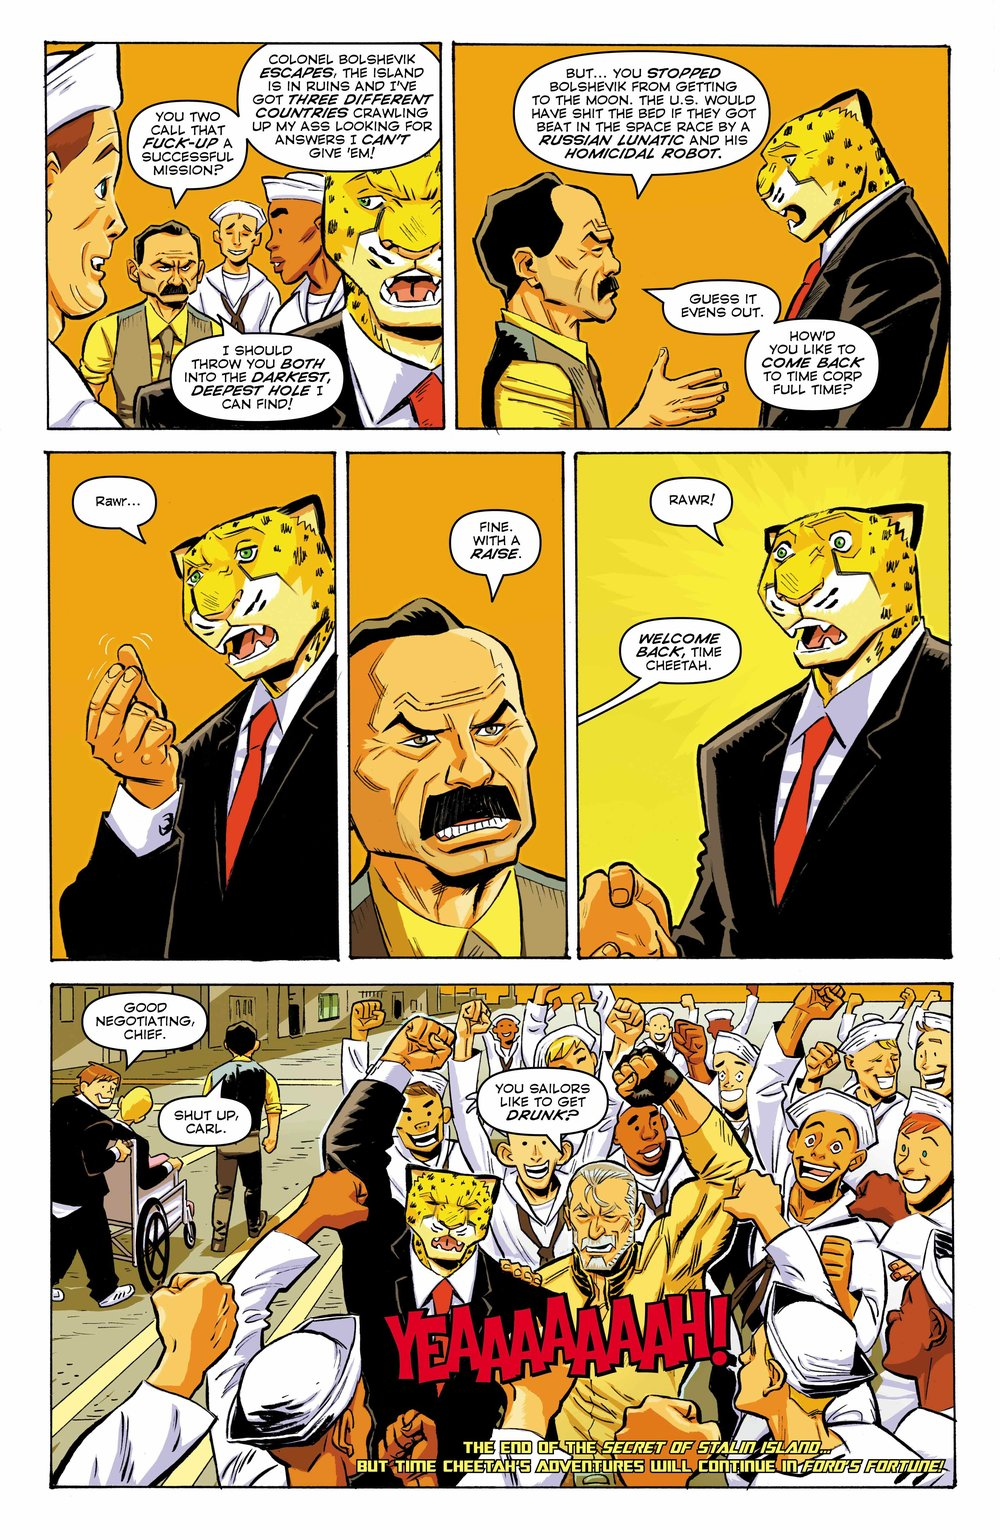 Time Cheetah - The Secret of Stalin Island Part 2 - Page 26